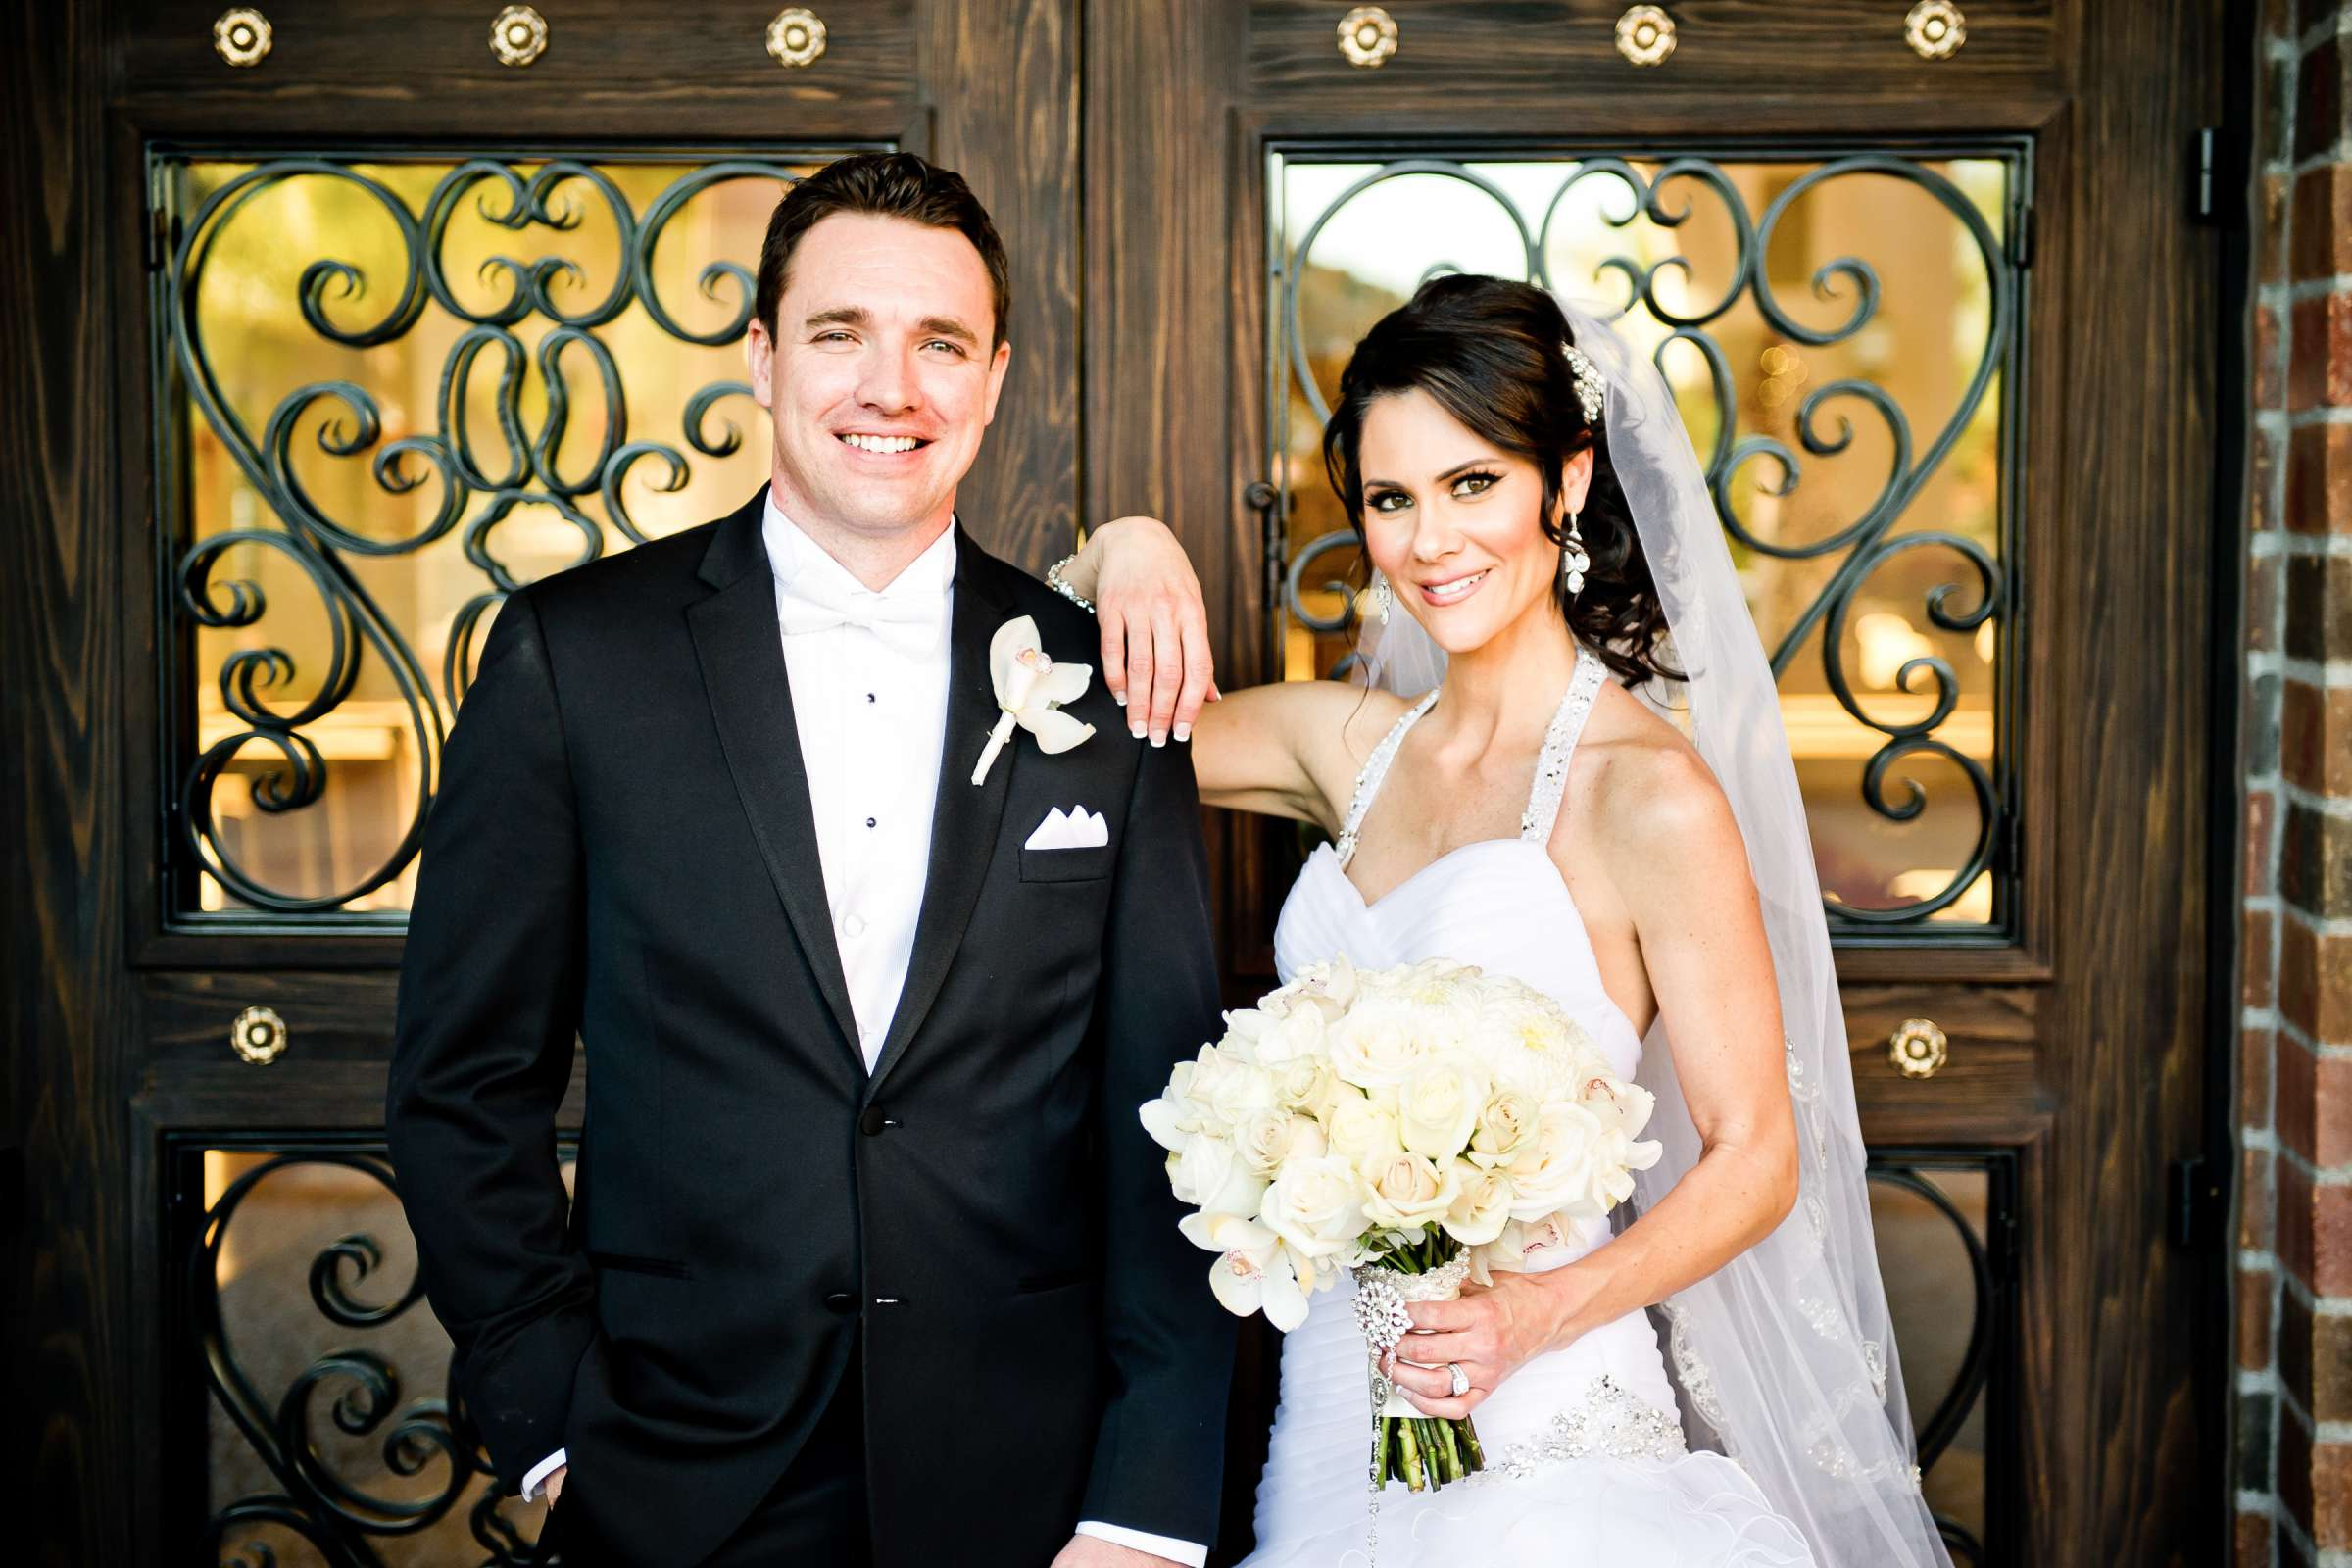 Fairmont Grand Del Mar Wedding, Angela and Tom Wedding Photo #12 by True Photography